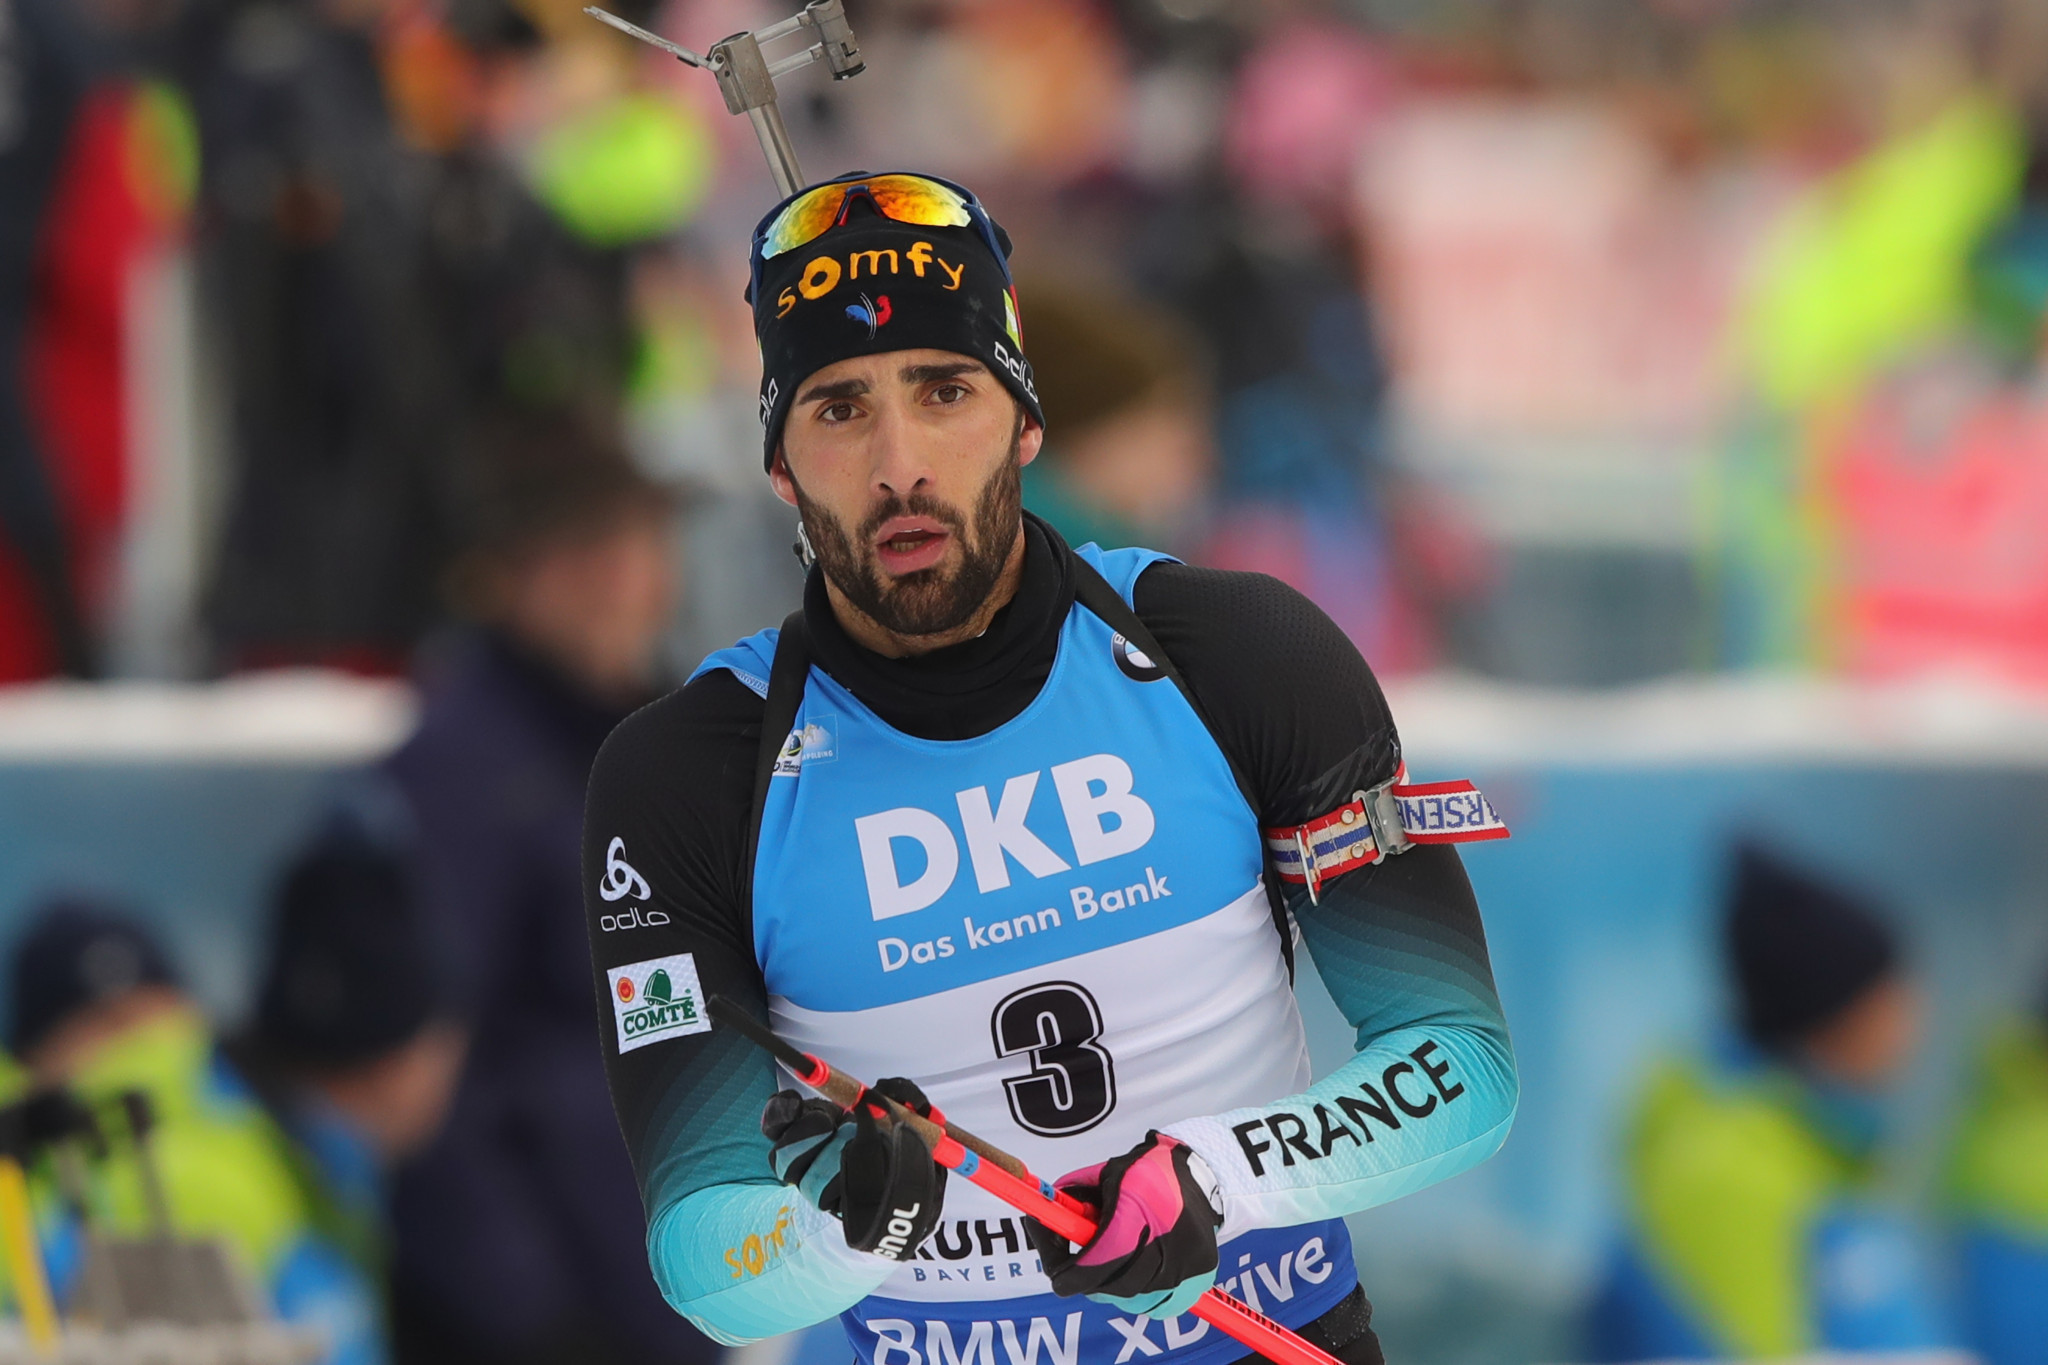 Martin Fourcade missed out on the podium but remains third in the overall World Cup standings ©Getty Images